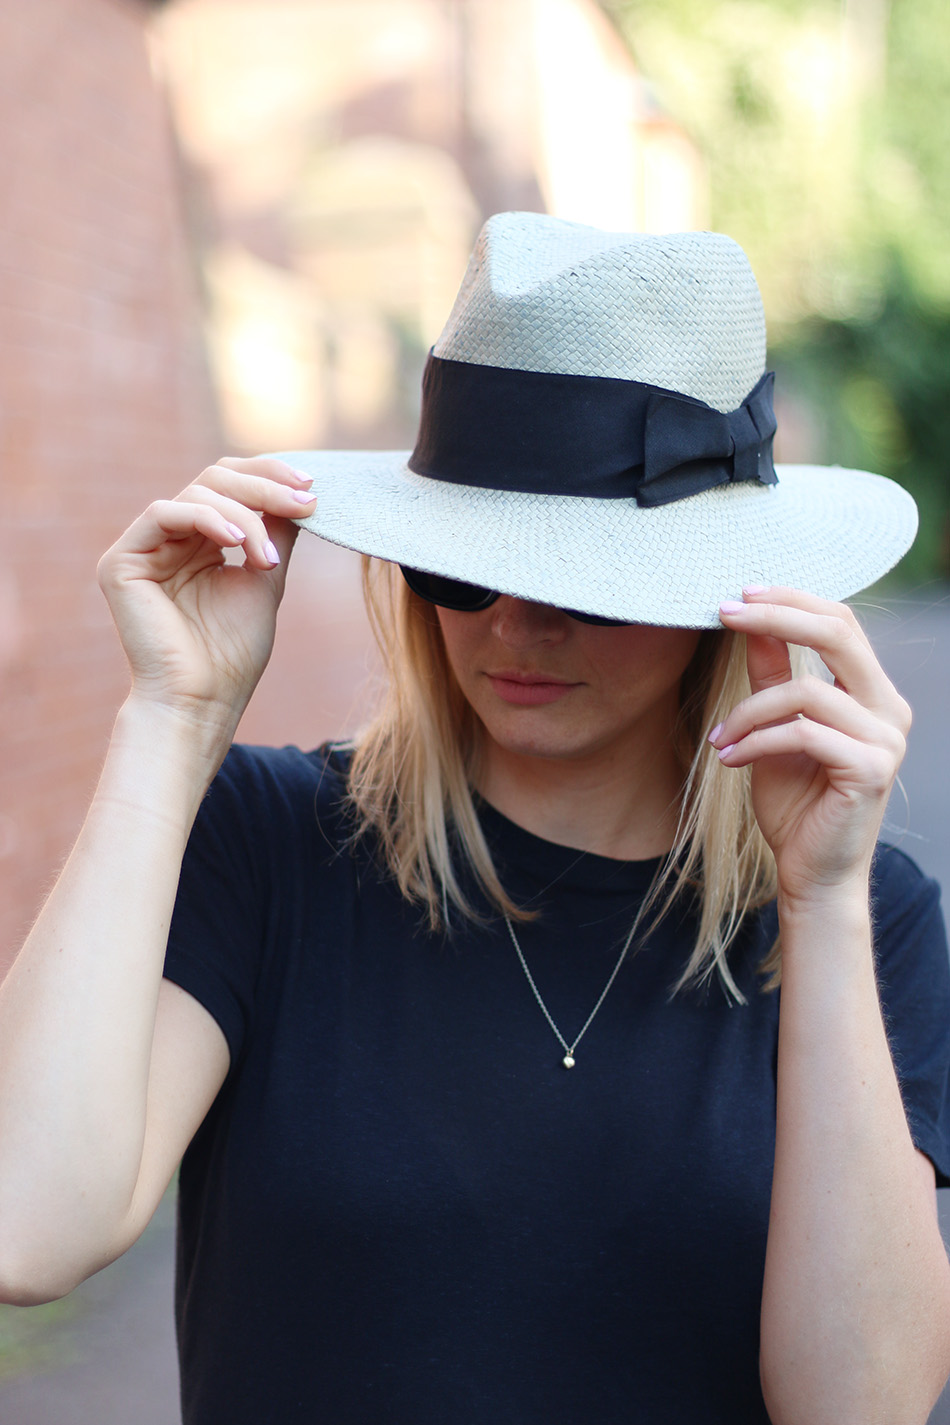 Fringe and Doll Back To basic casual hat look IMG_8101